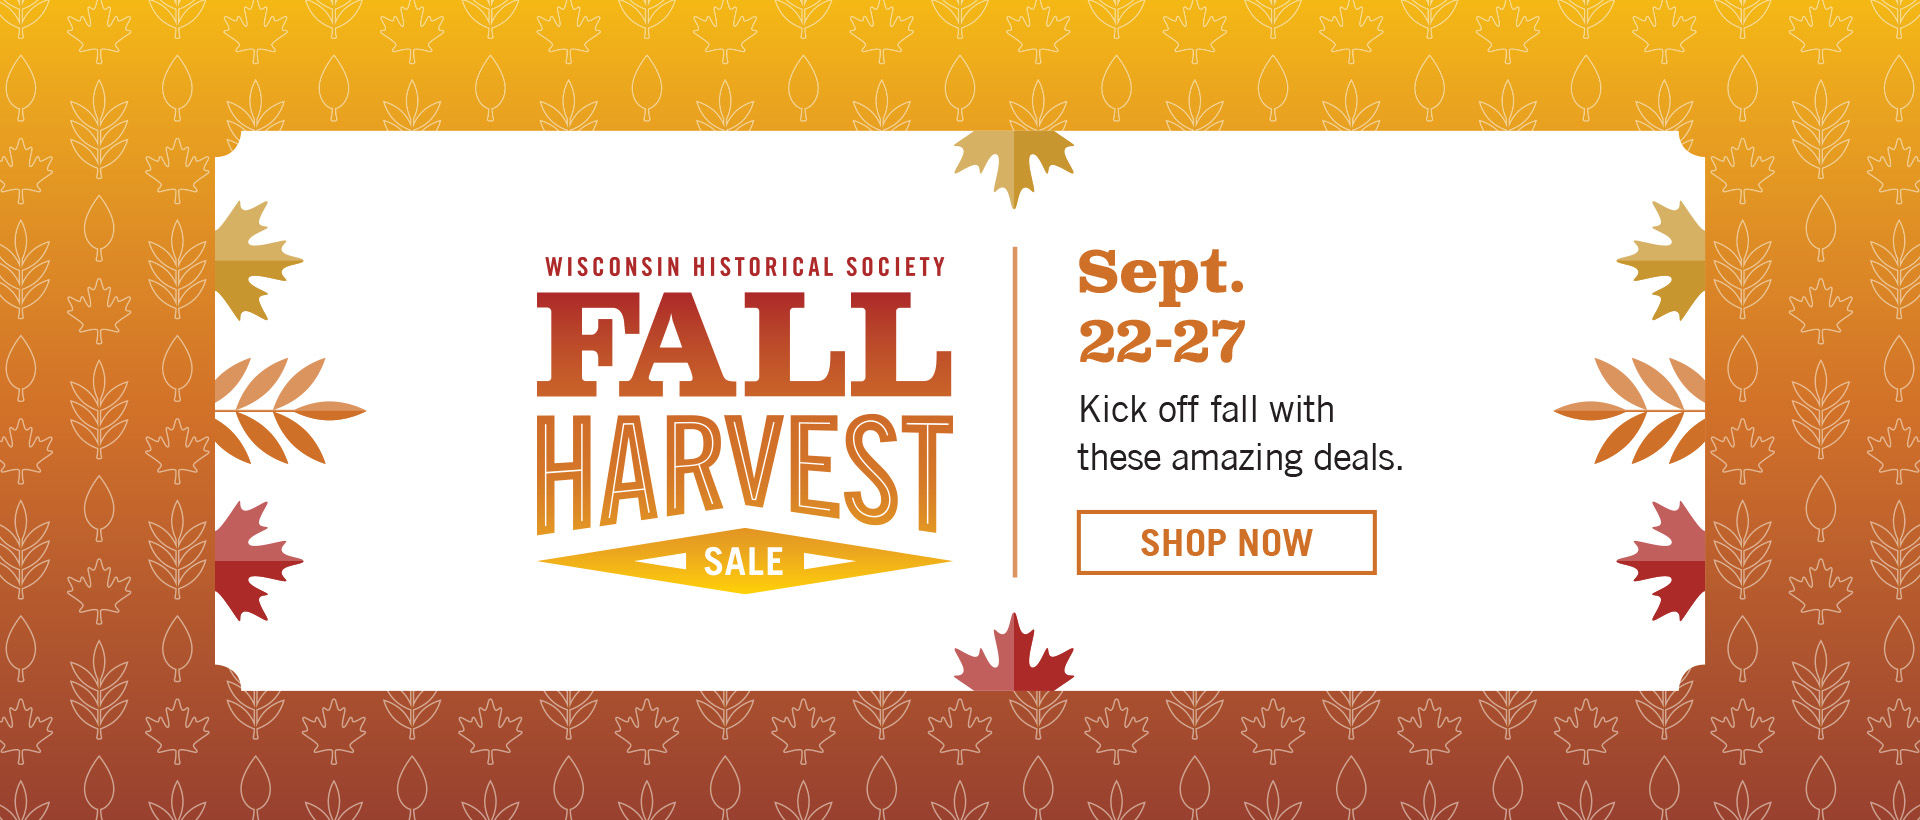 Fall Harvest Sale: Kick off Fall with these amazing deals | Sept 22 - 27 | Shop Now!